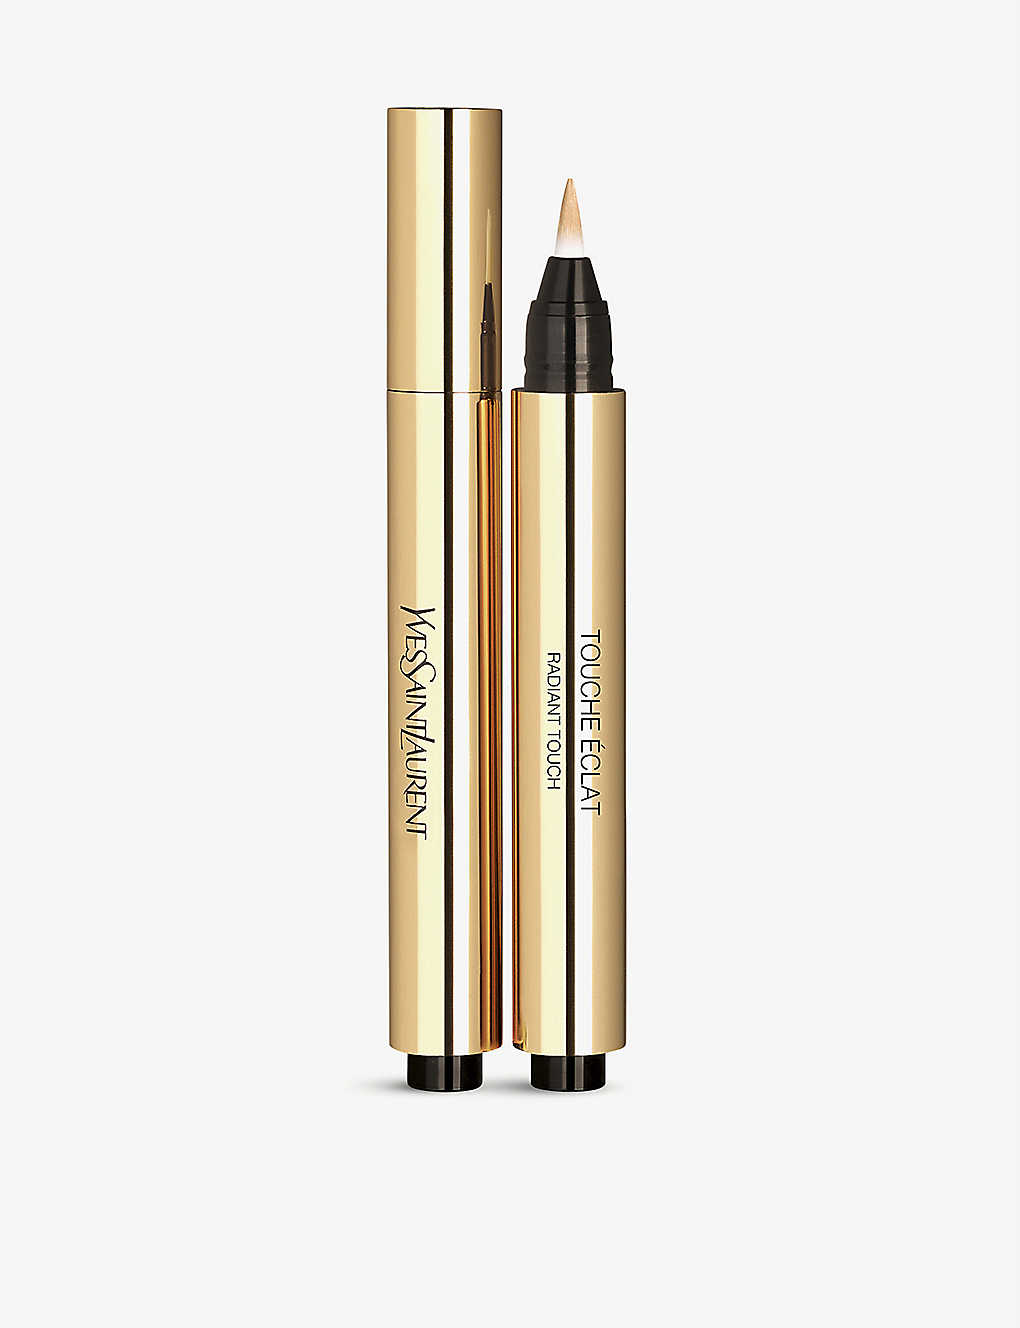 YVES SAINT LAURENT: Touche Éclat Illuminating Pen 2.5ml